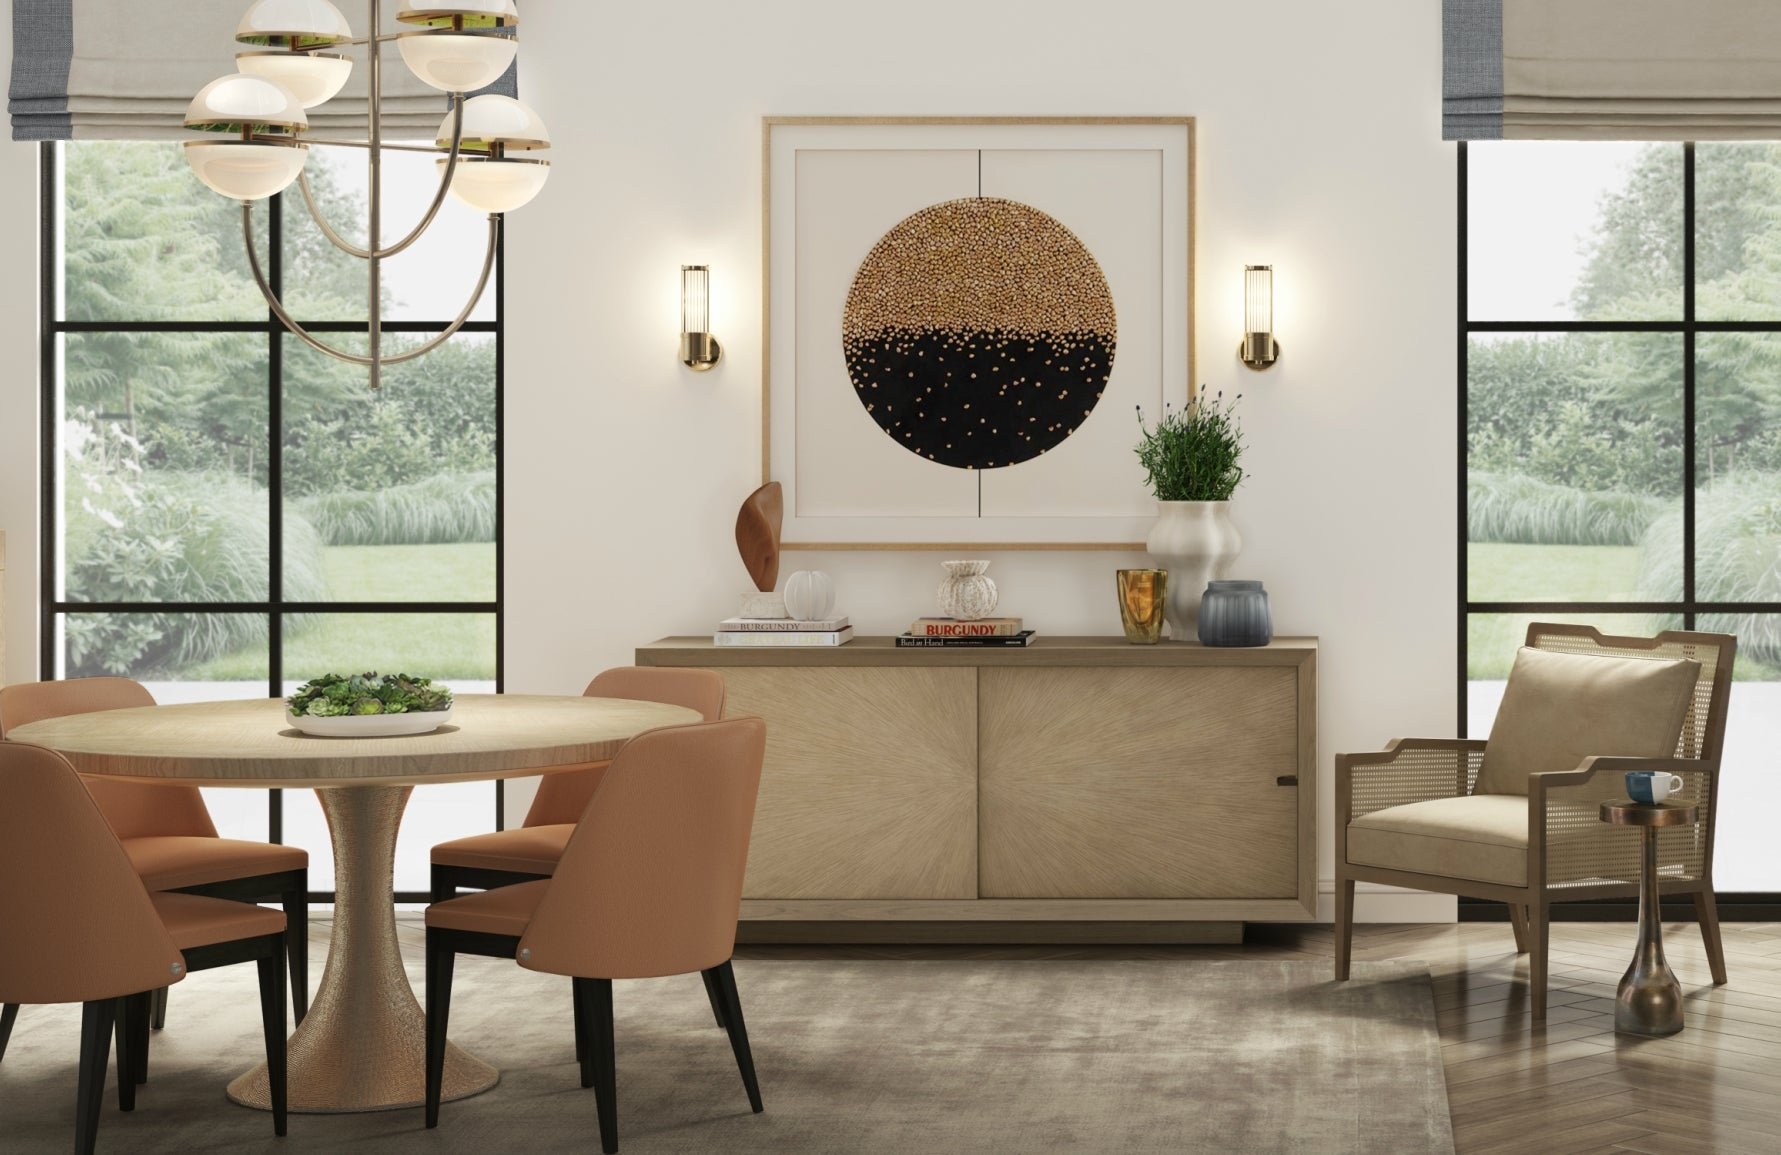 Informal Contemporary Dining Room | Luxury Interior Design | Shop our Wimbledon Collection at LuxDeco.com